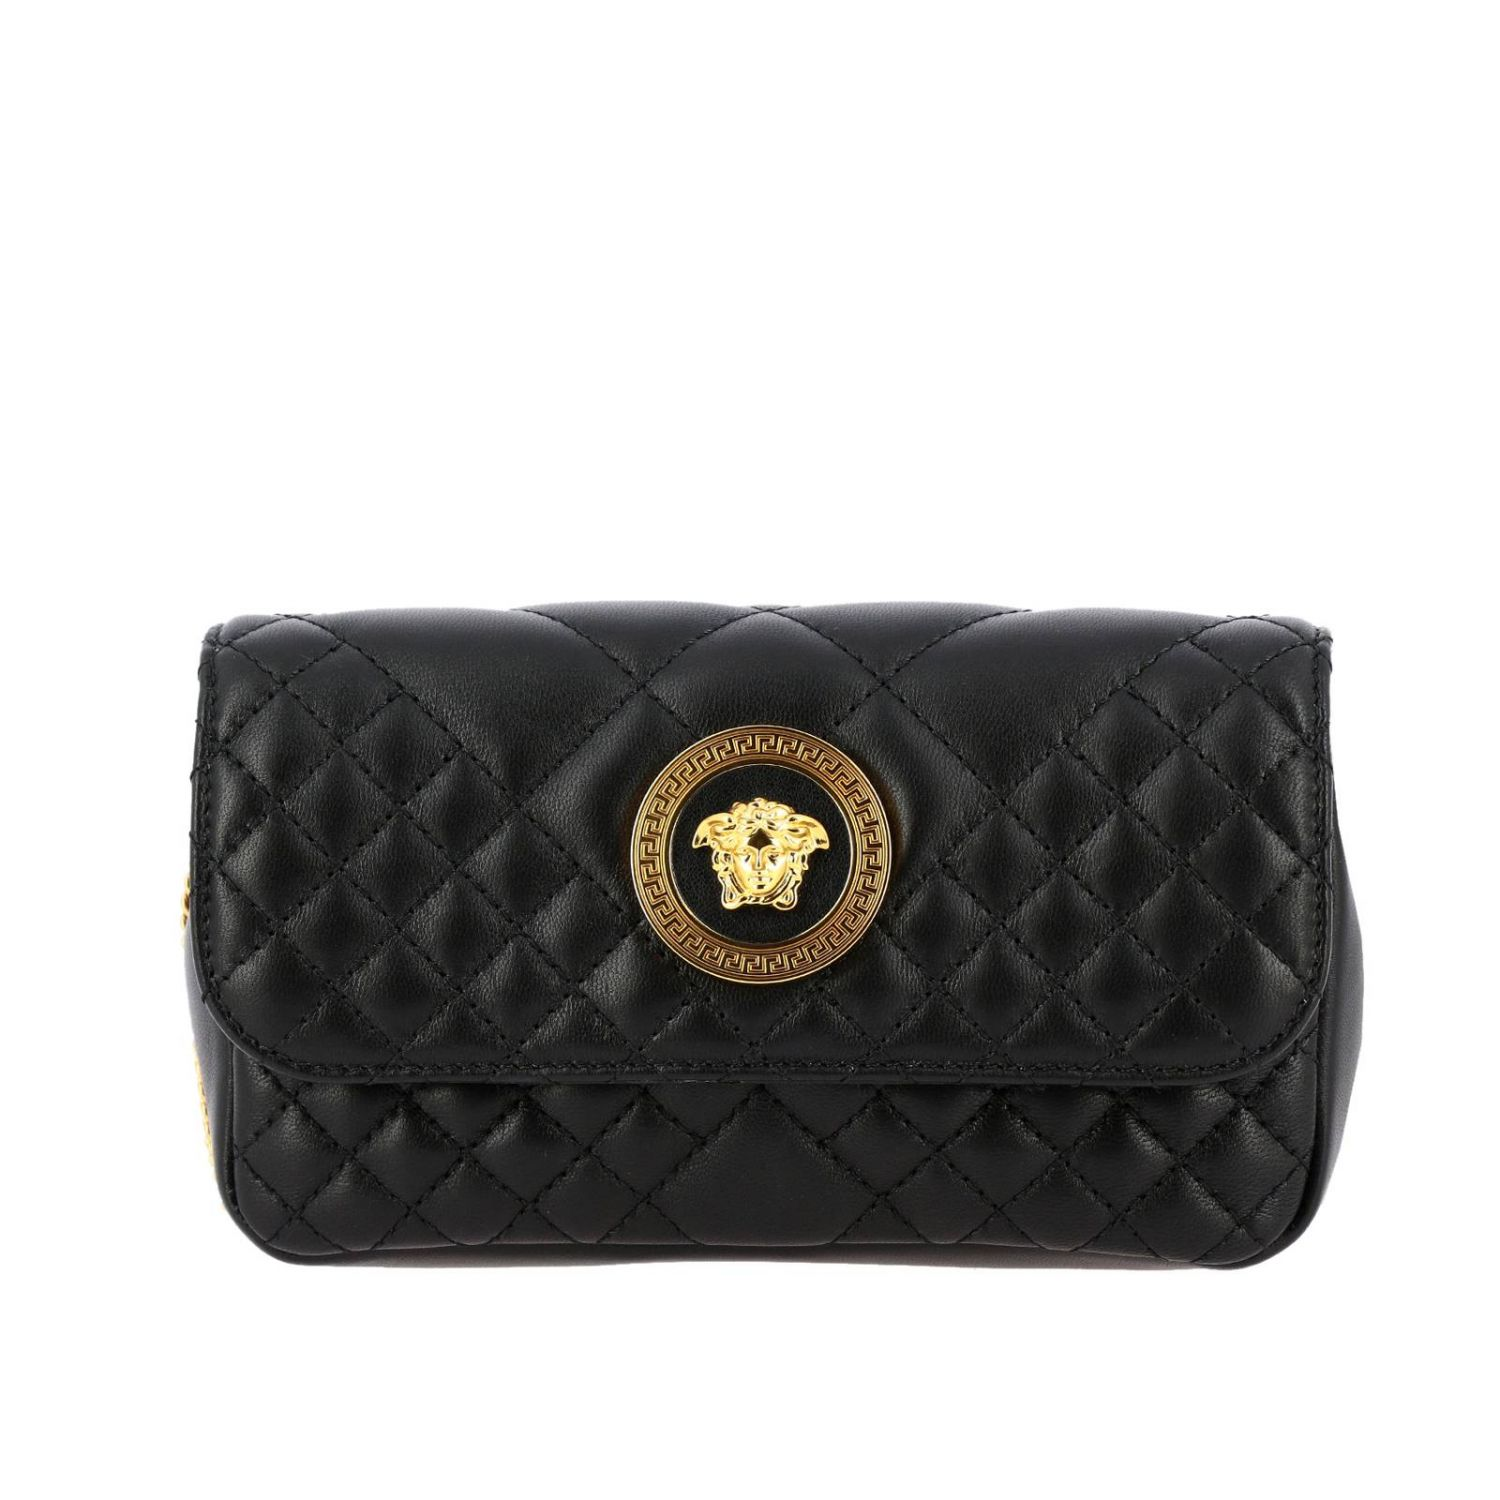 Versace shoulder bag in quilted leather with Medusa head gold 1